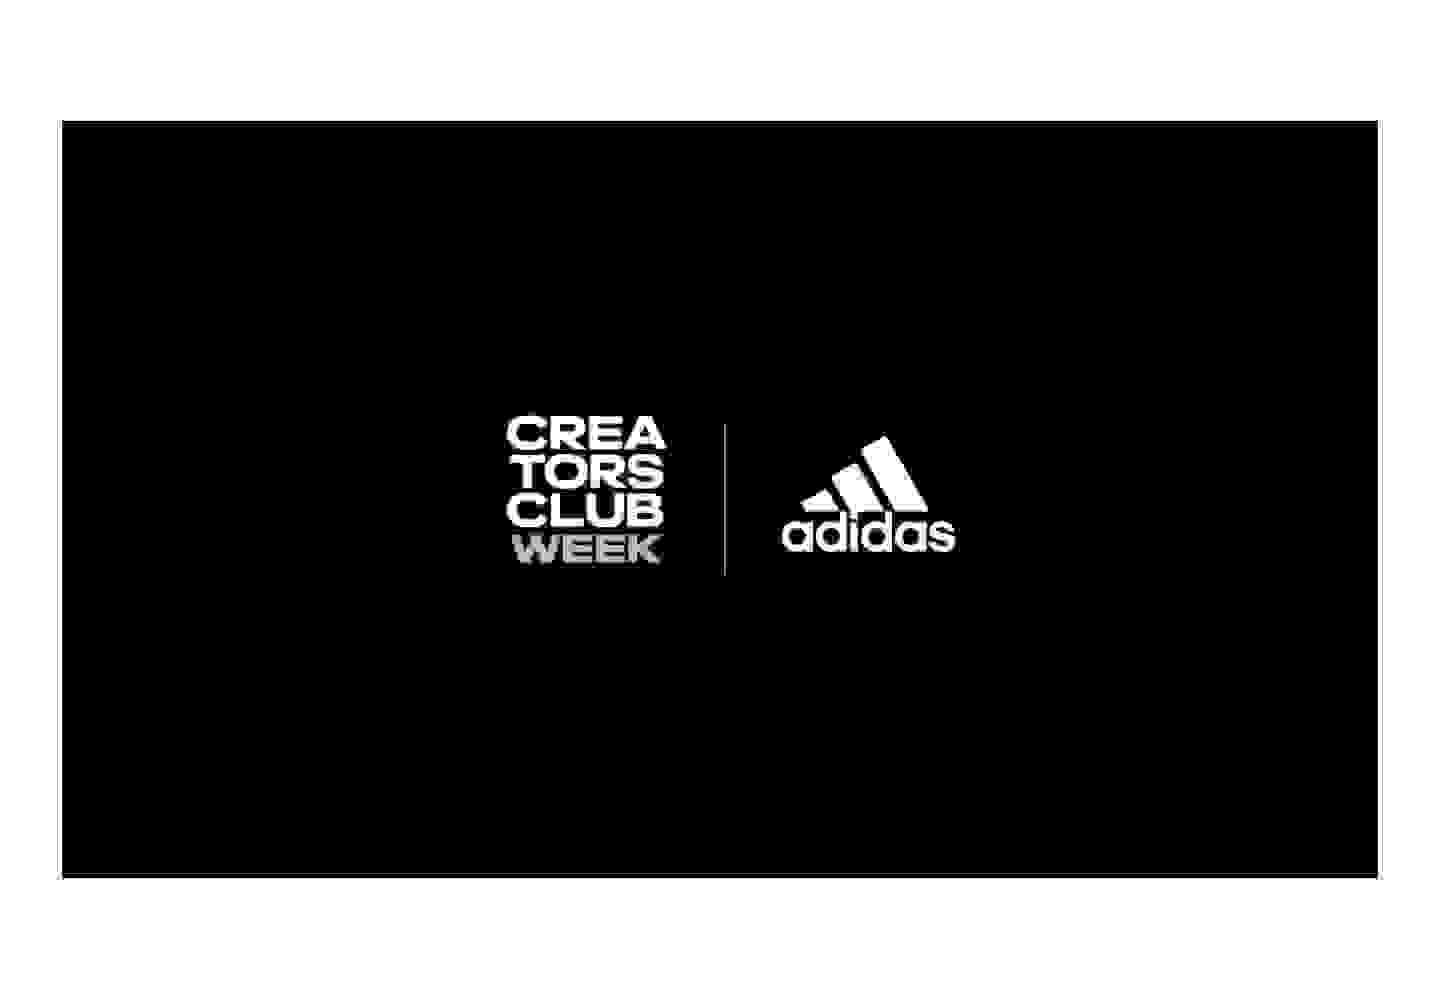 Adidas and Creators Club Week Logos